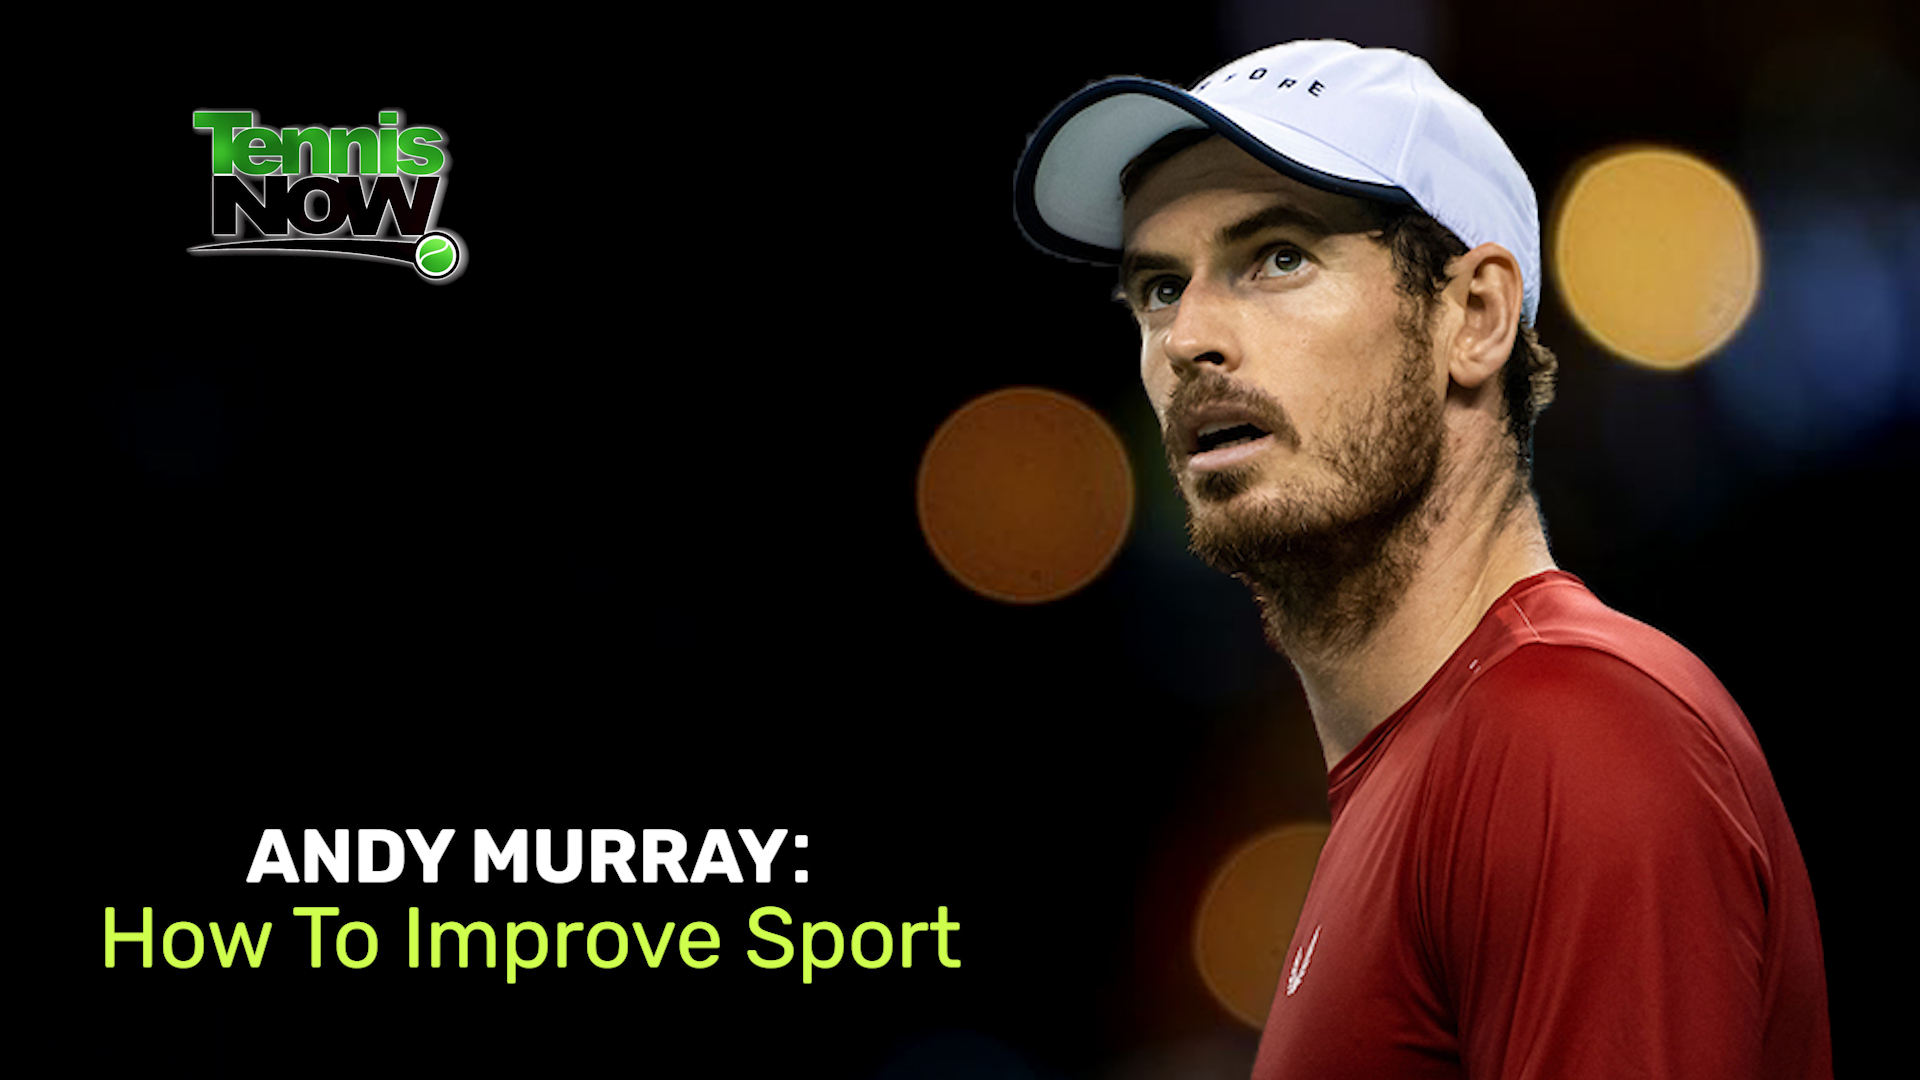 Murray: How To Improve Sport